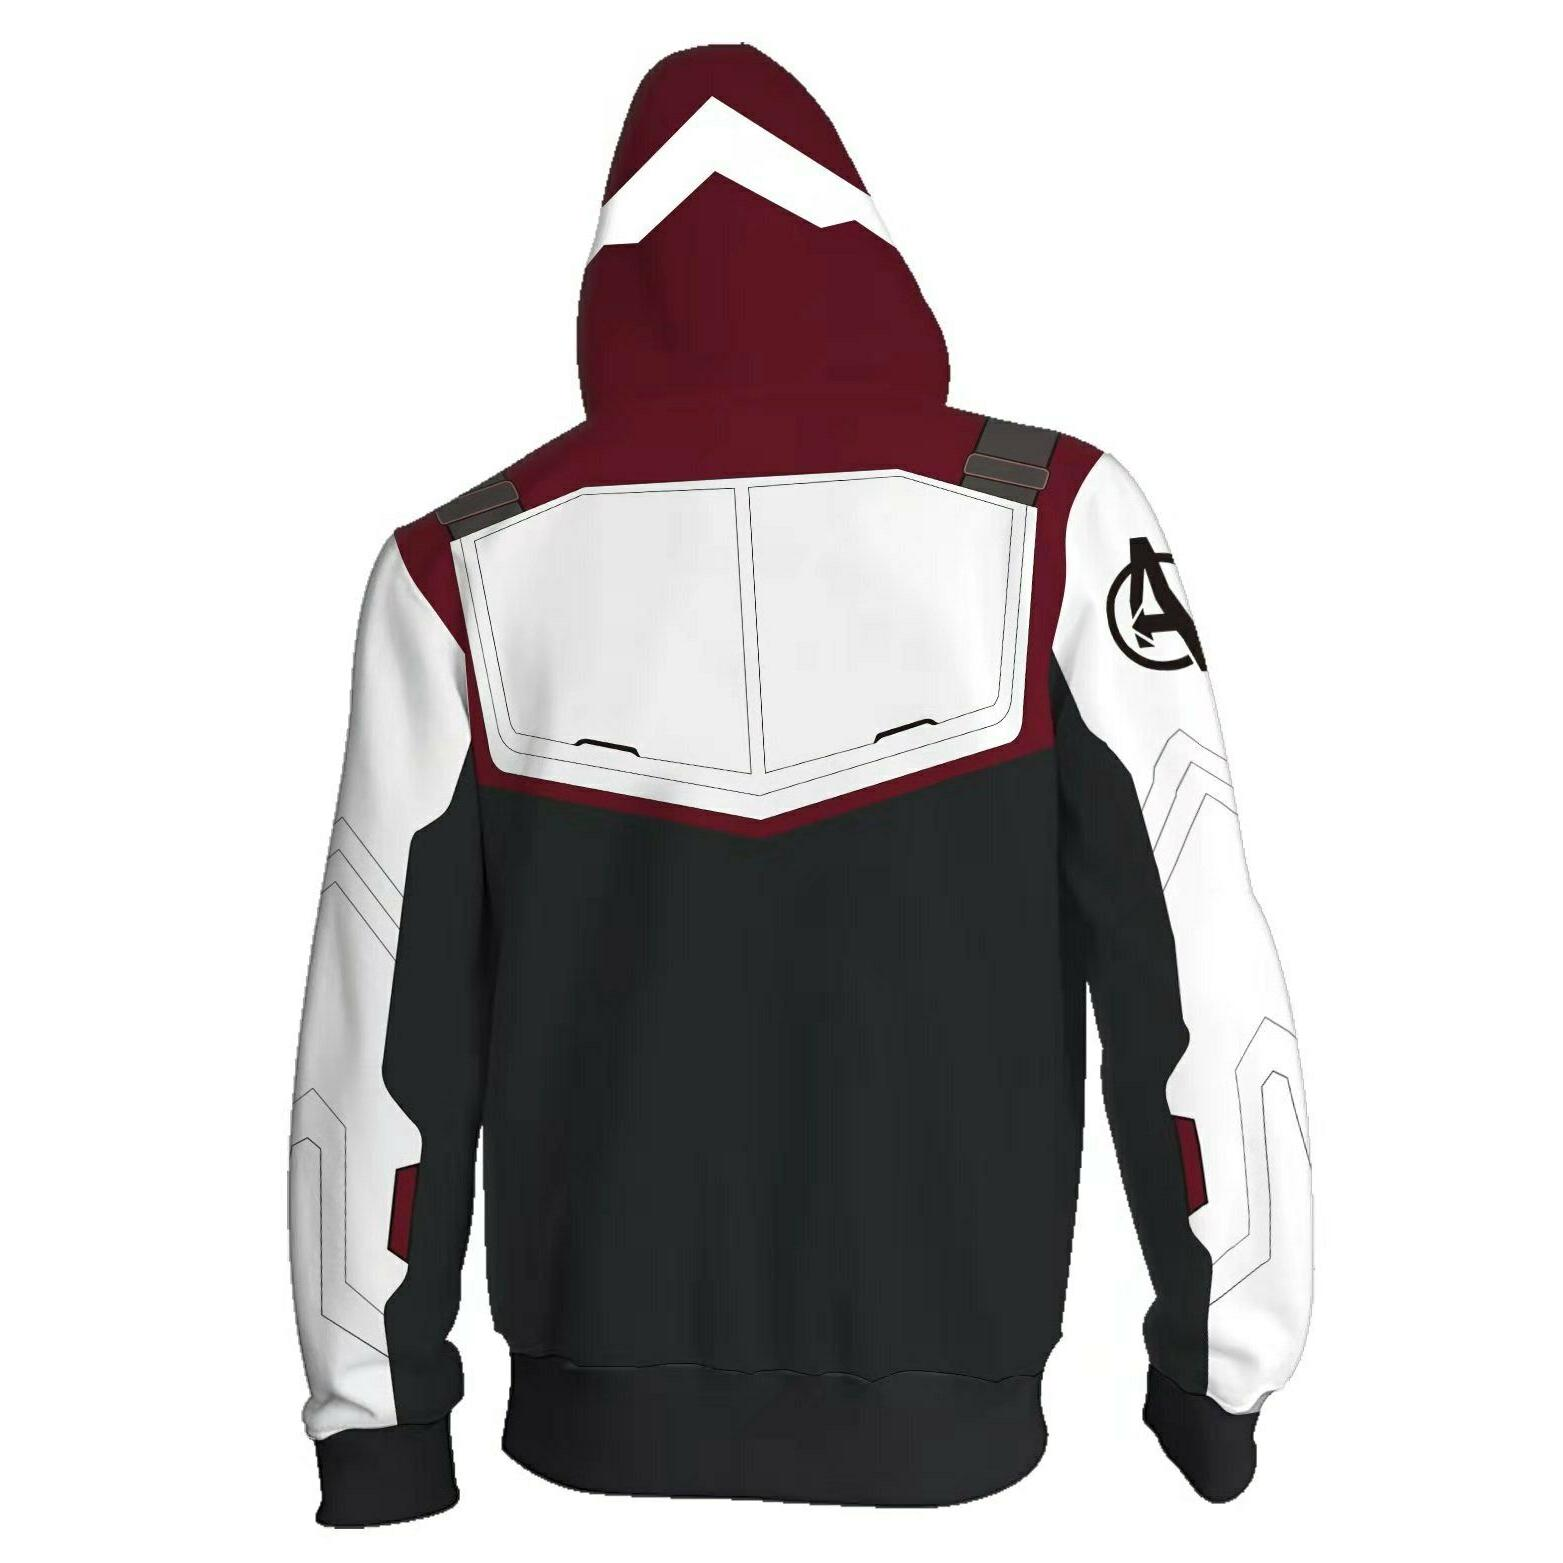 Avengers Endgame Tech Sweatshirts Sweater Jacket Coat